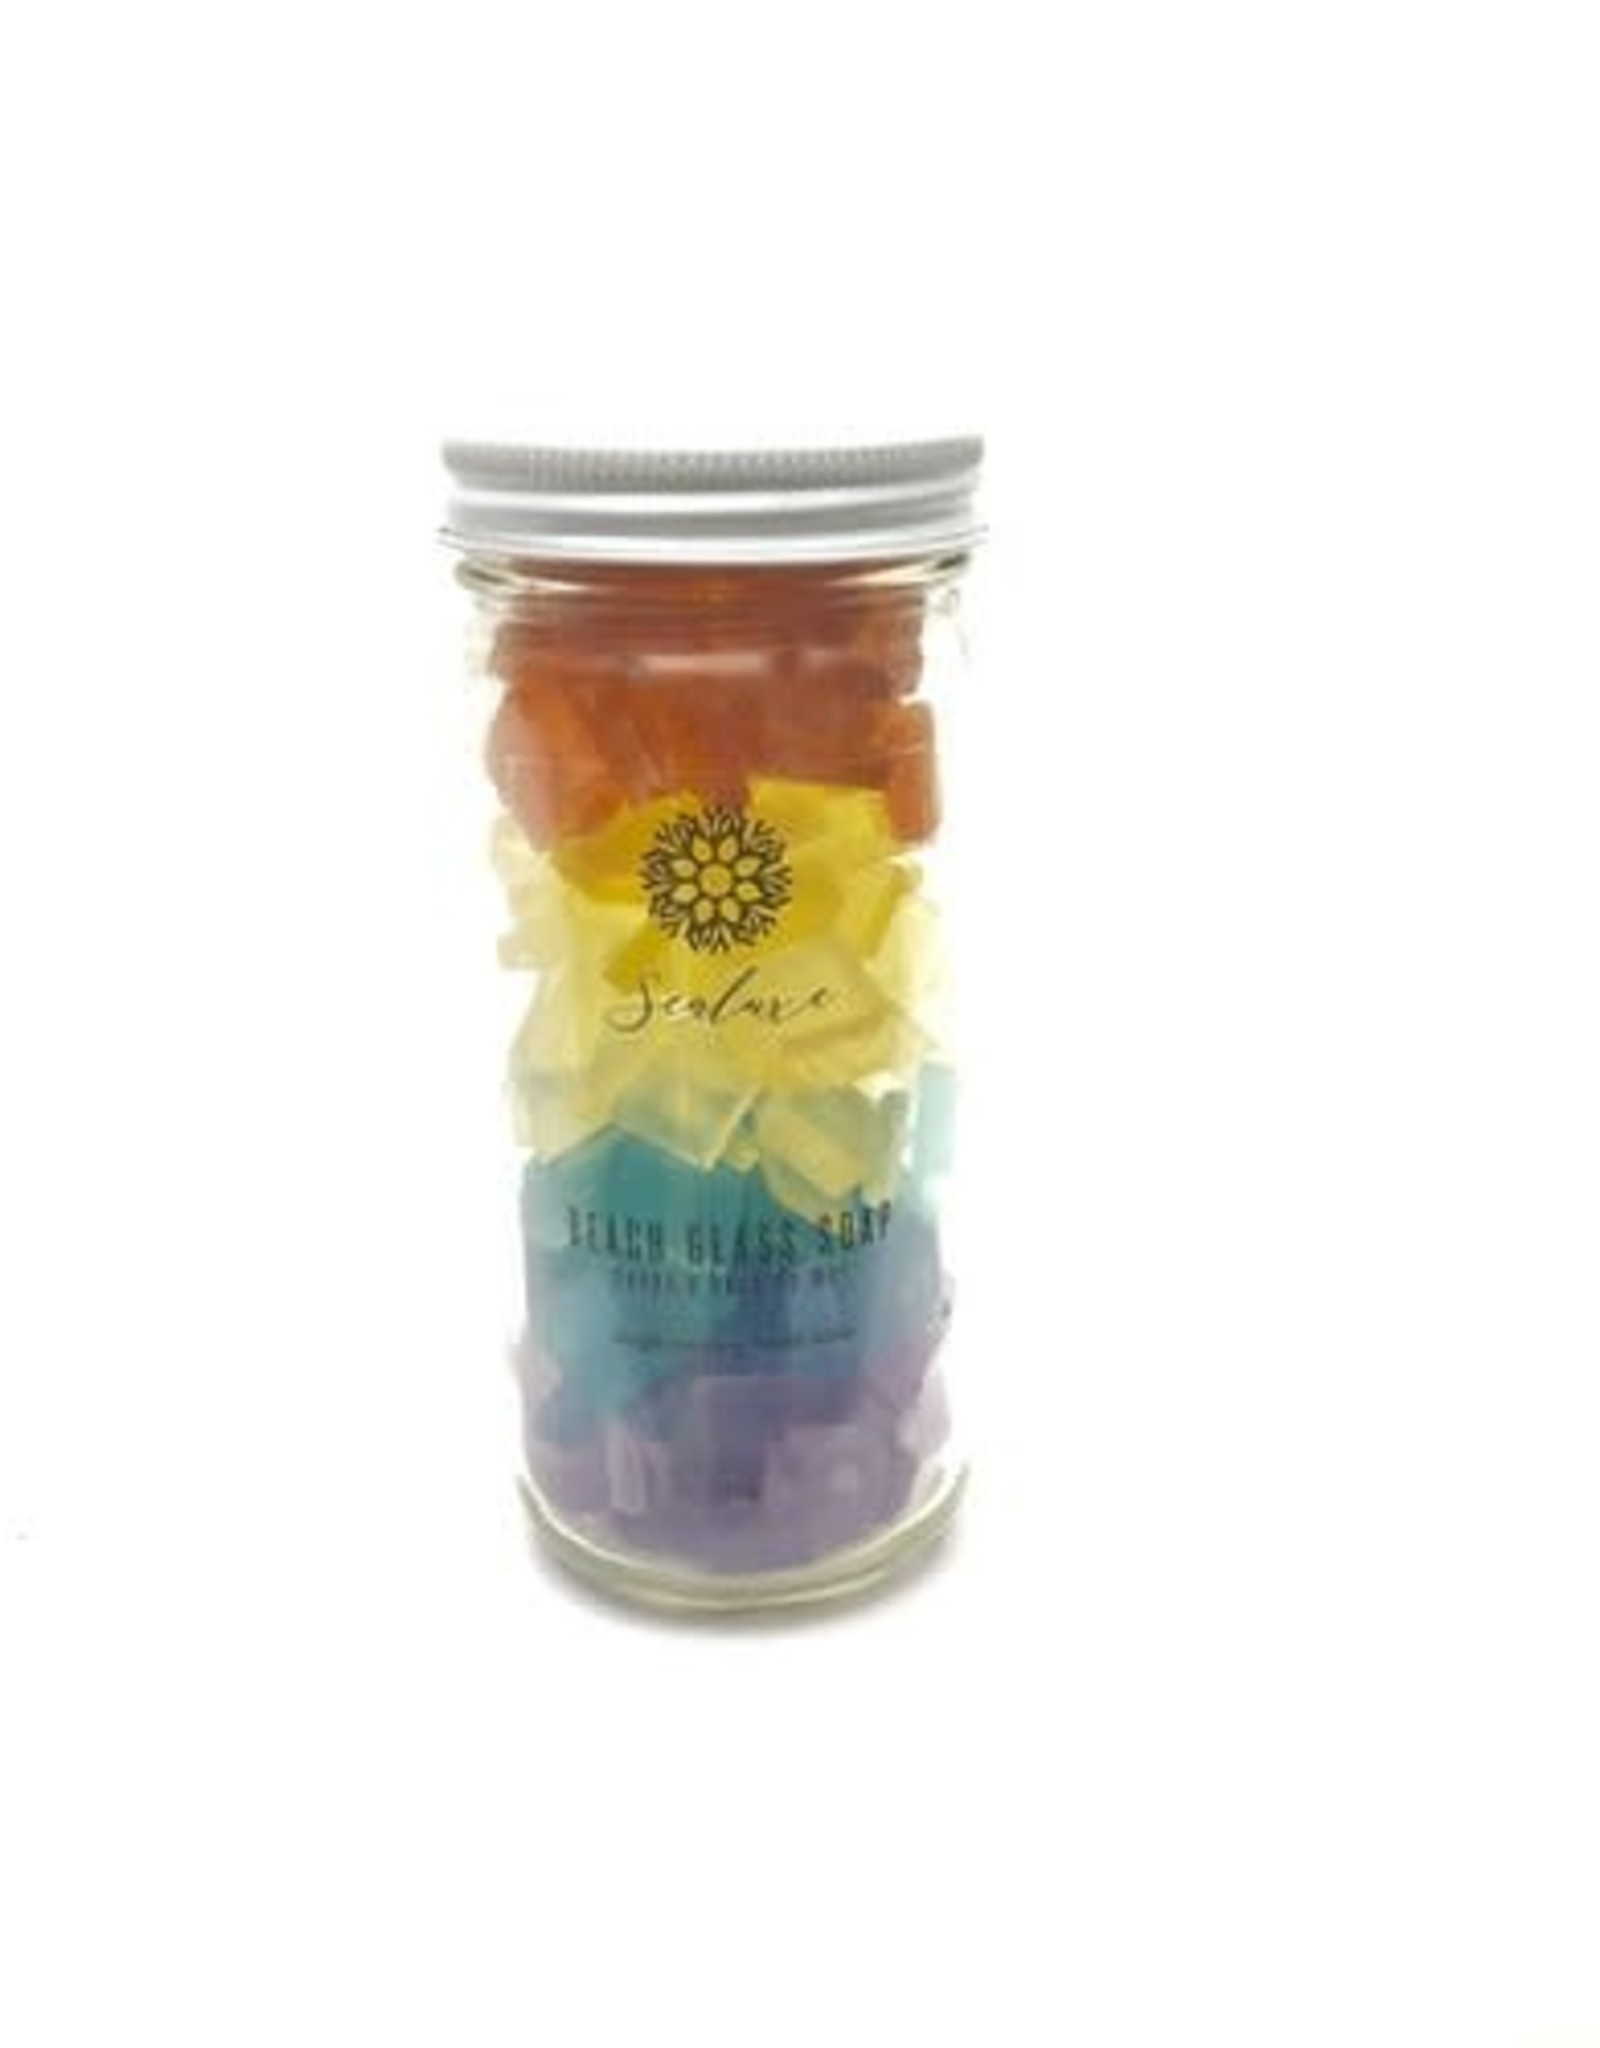 Sealuxe Rainbow Beach Glass Soap